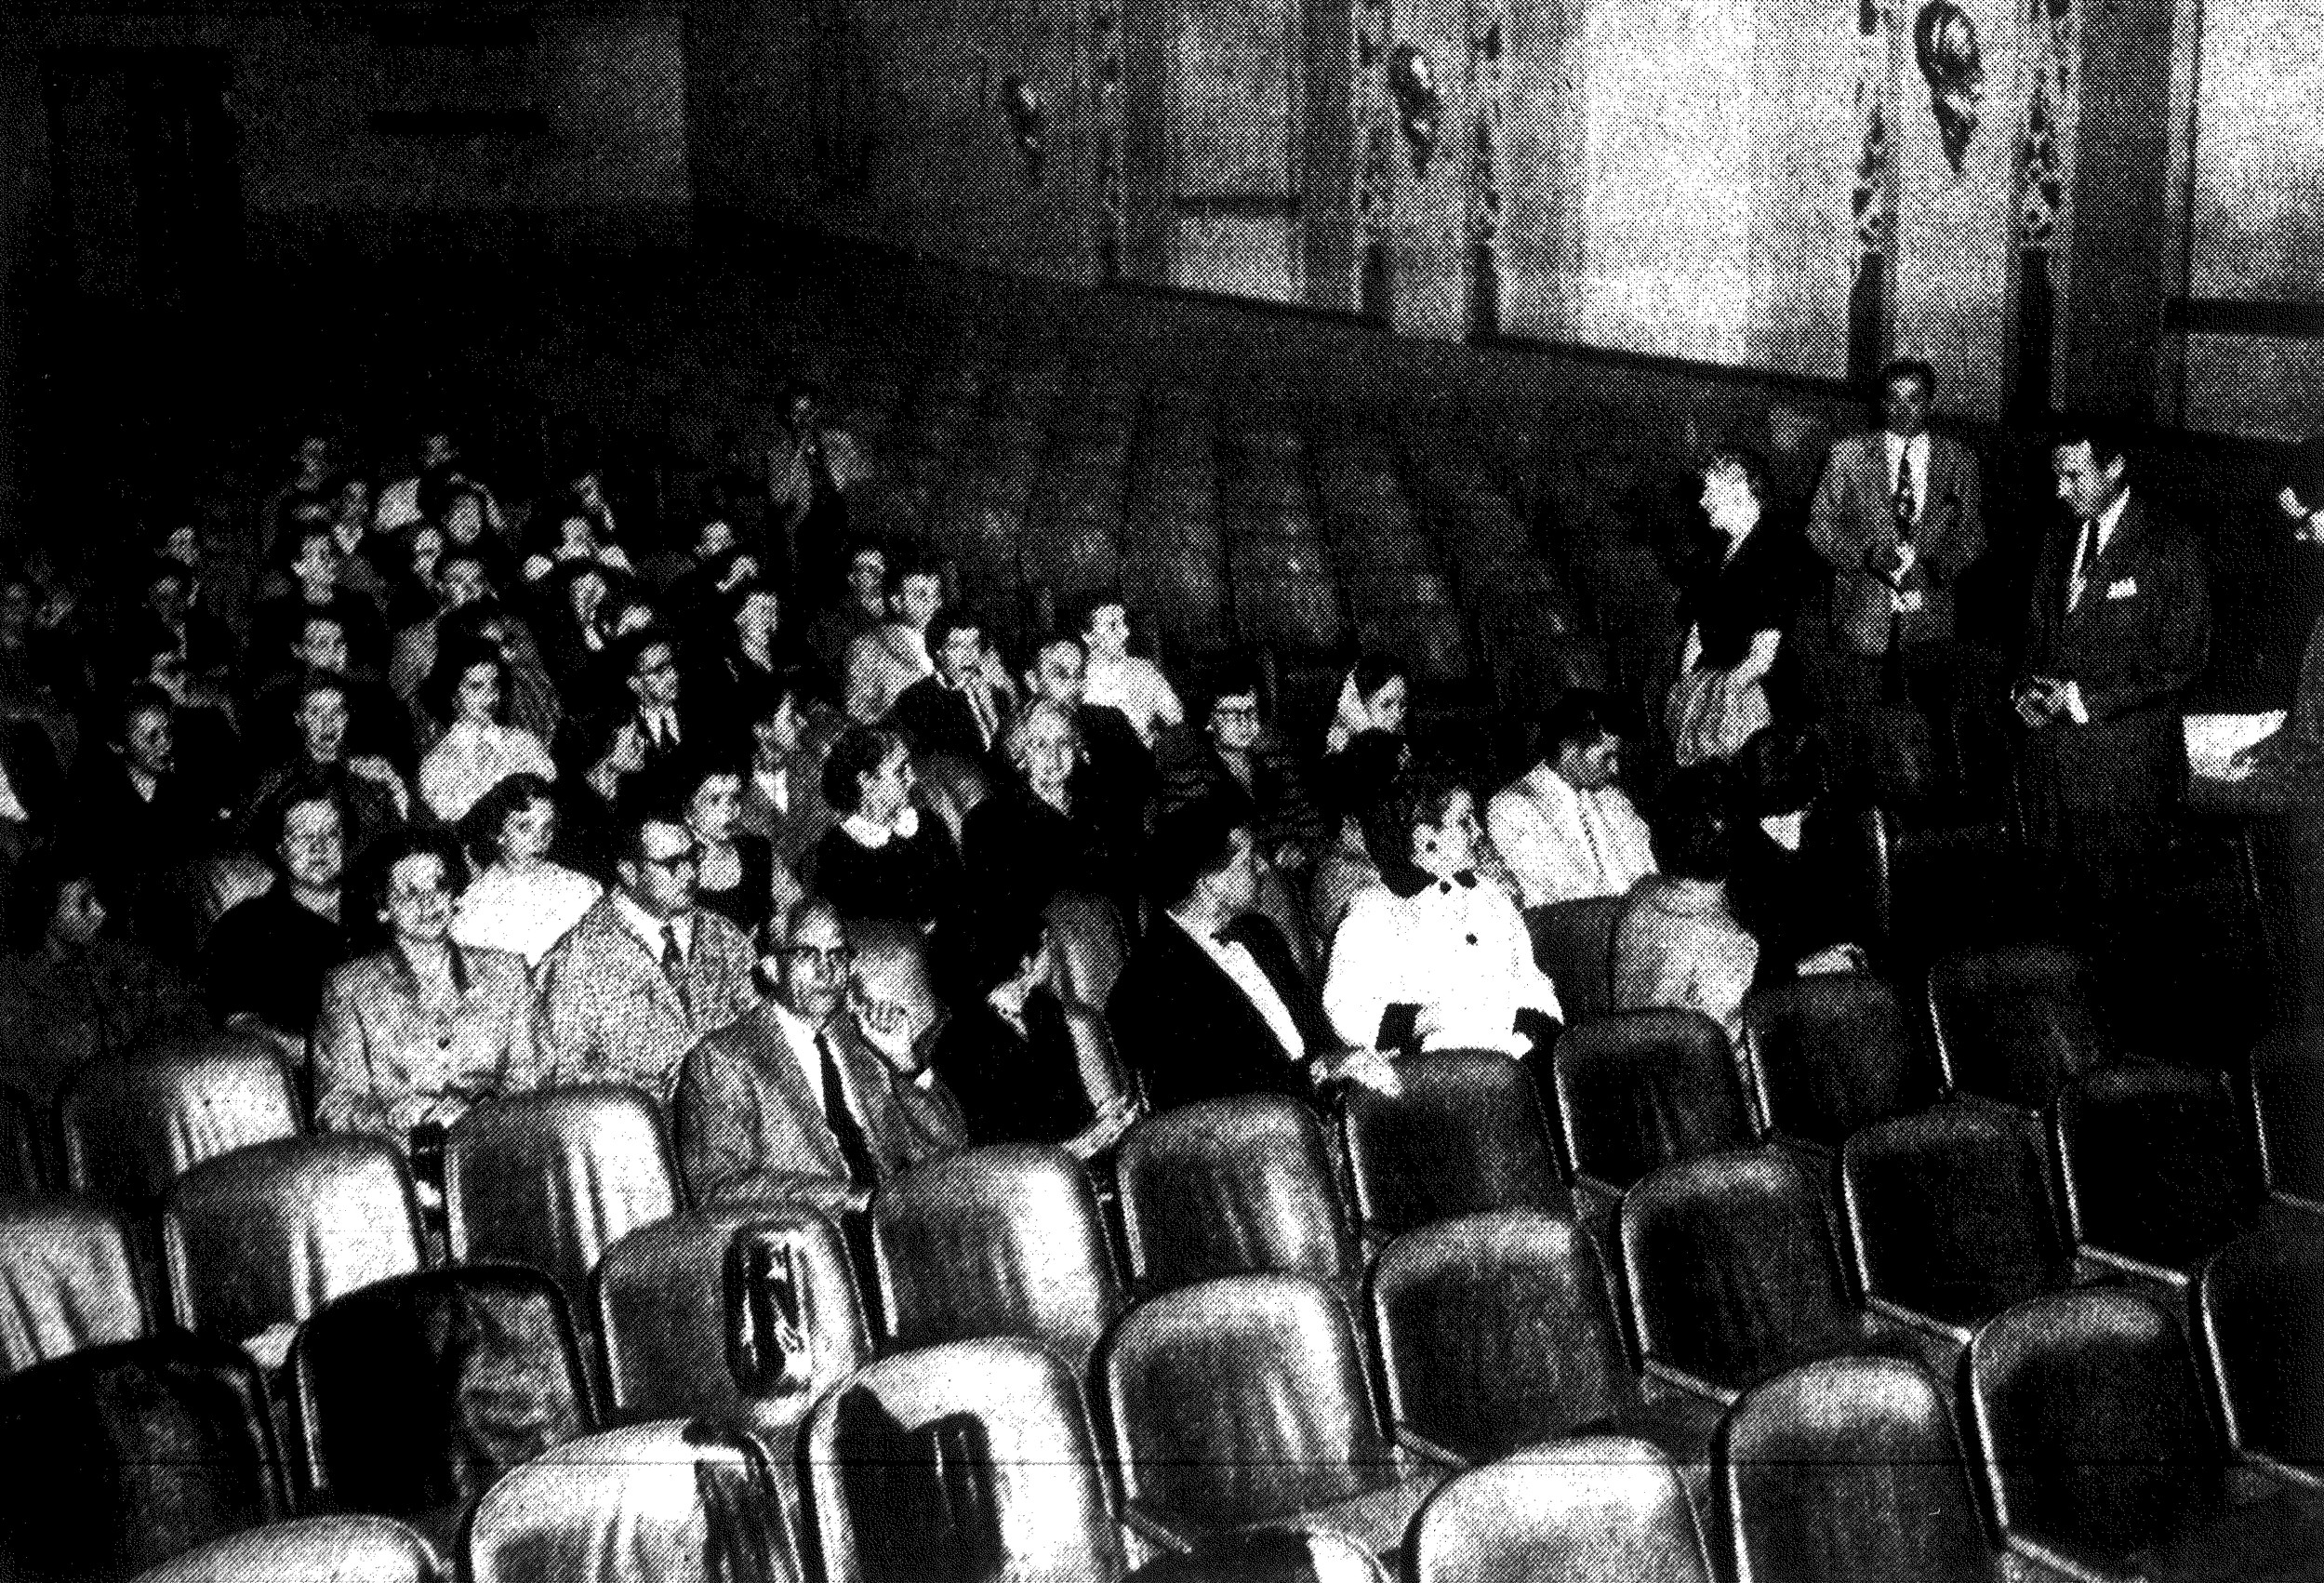 Personnel from Merchants Assn. stores in Sumter attend a kickoff meeting for the Salesperson of the Week Contest at the Sumter Theatre in October 1955.